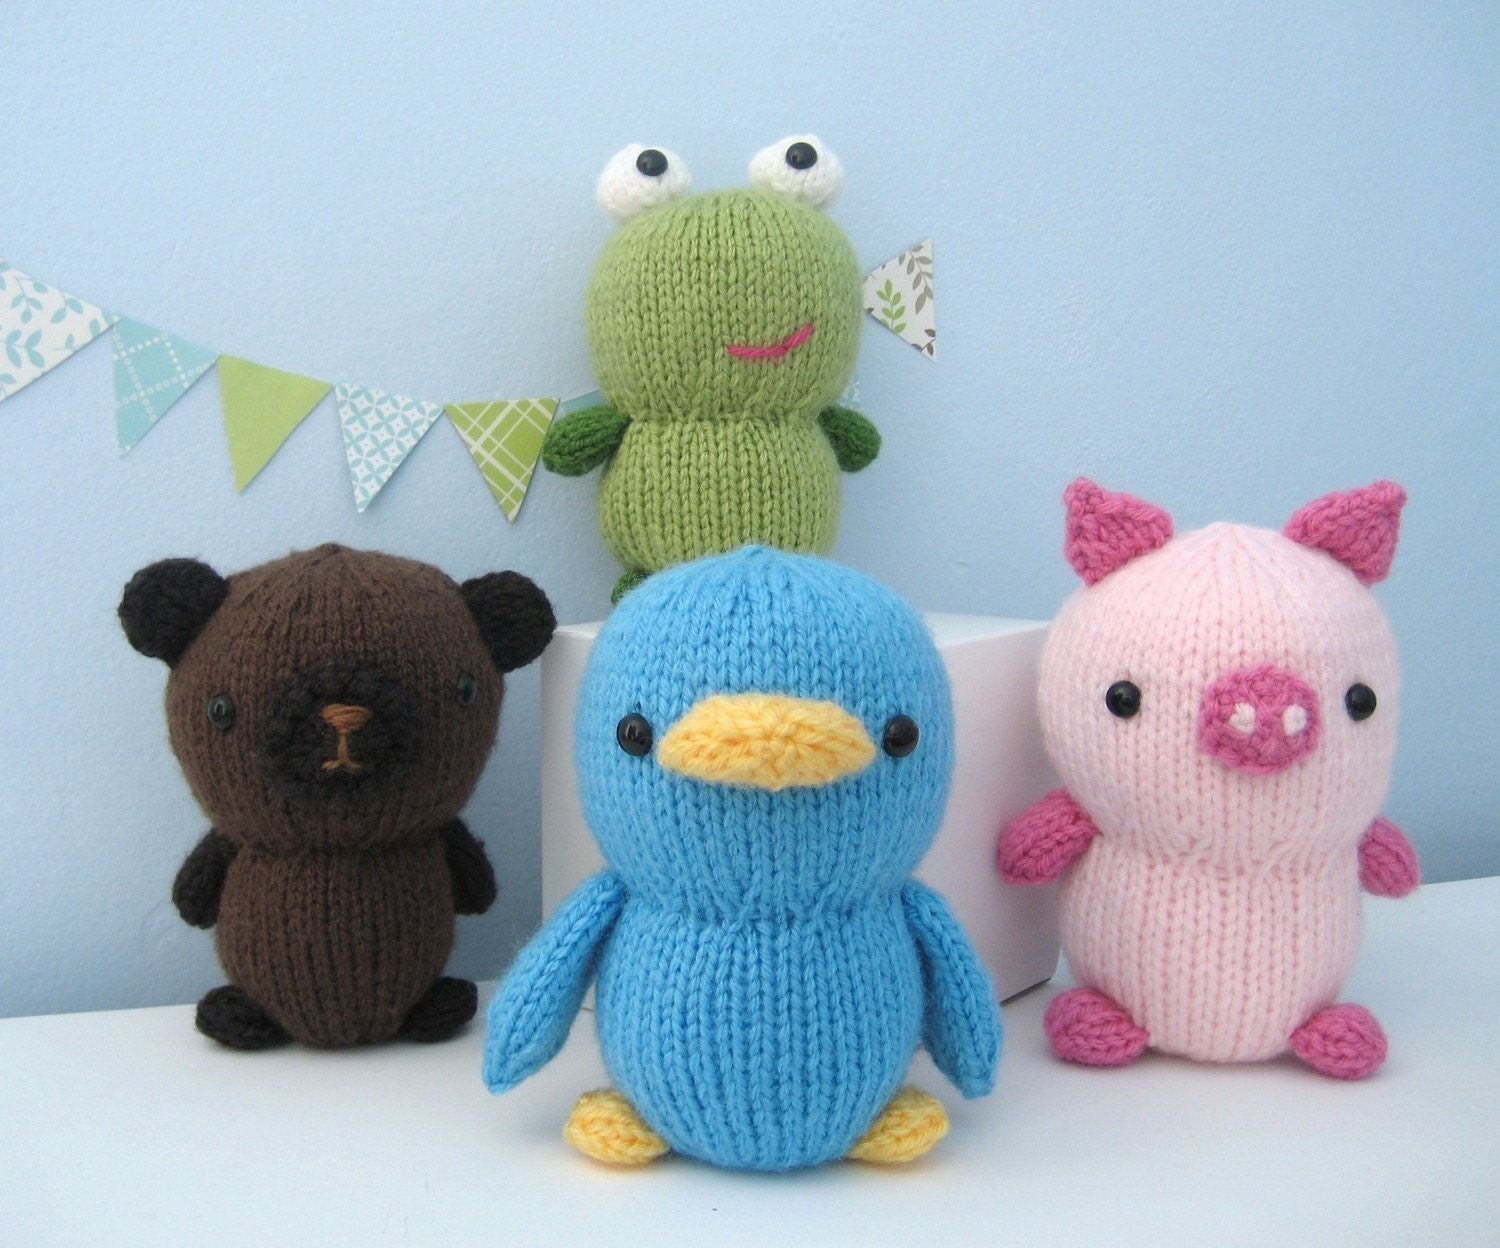 Knitting Animals Free : Image gallery knitted amigurumi patterns